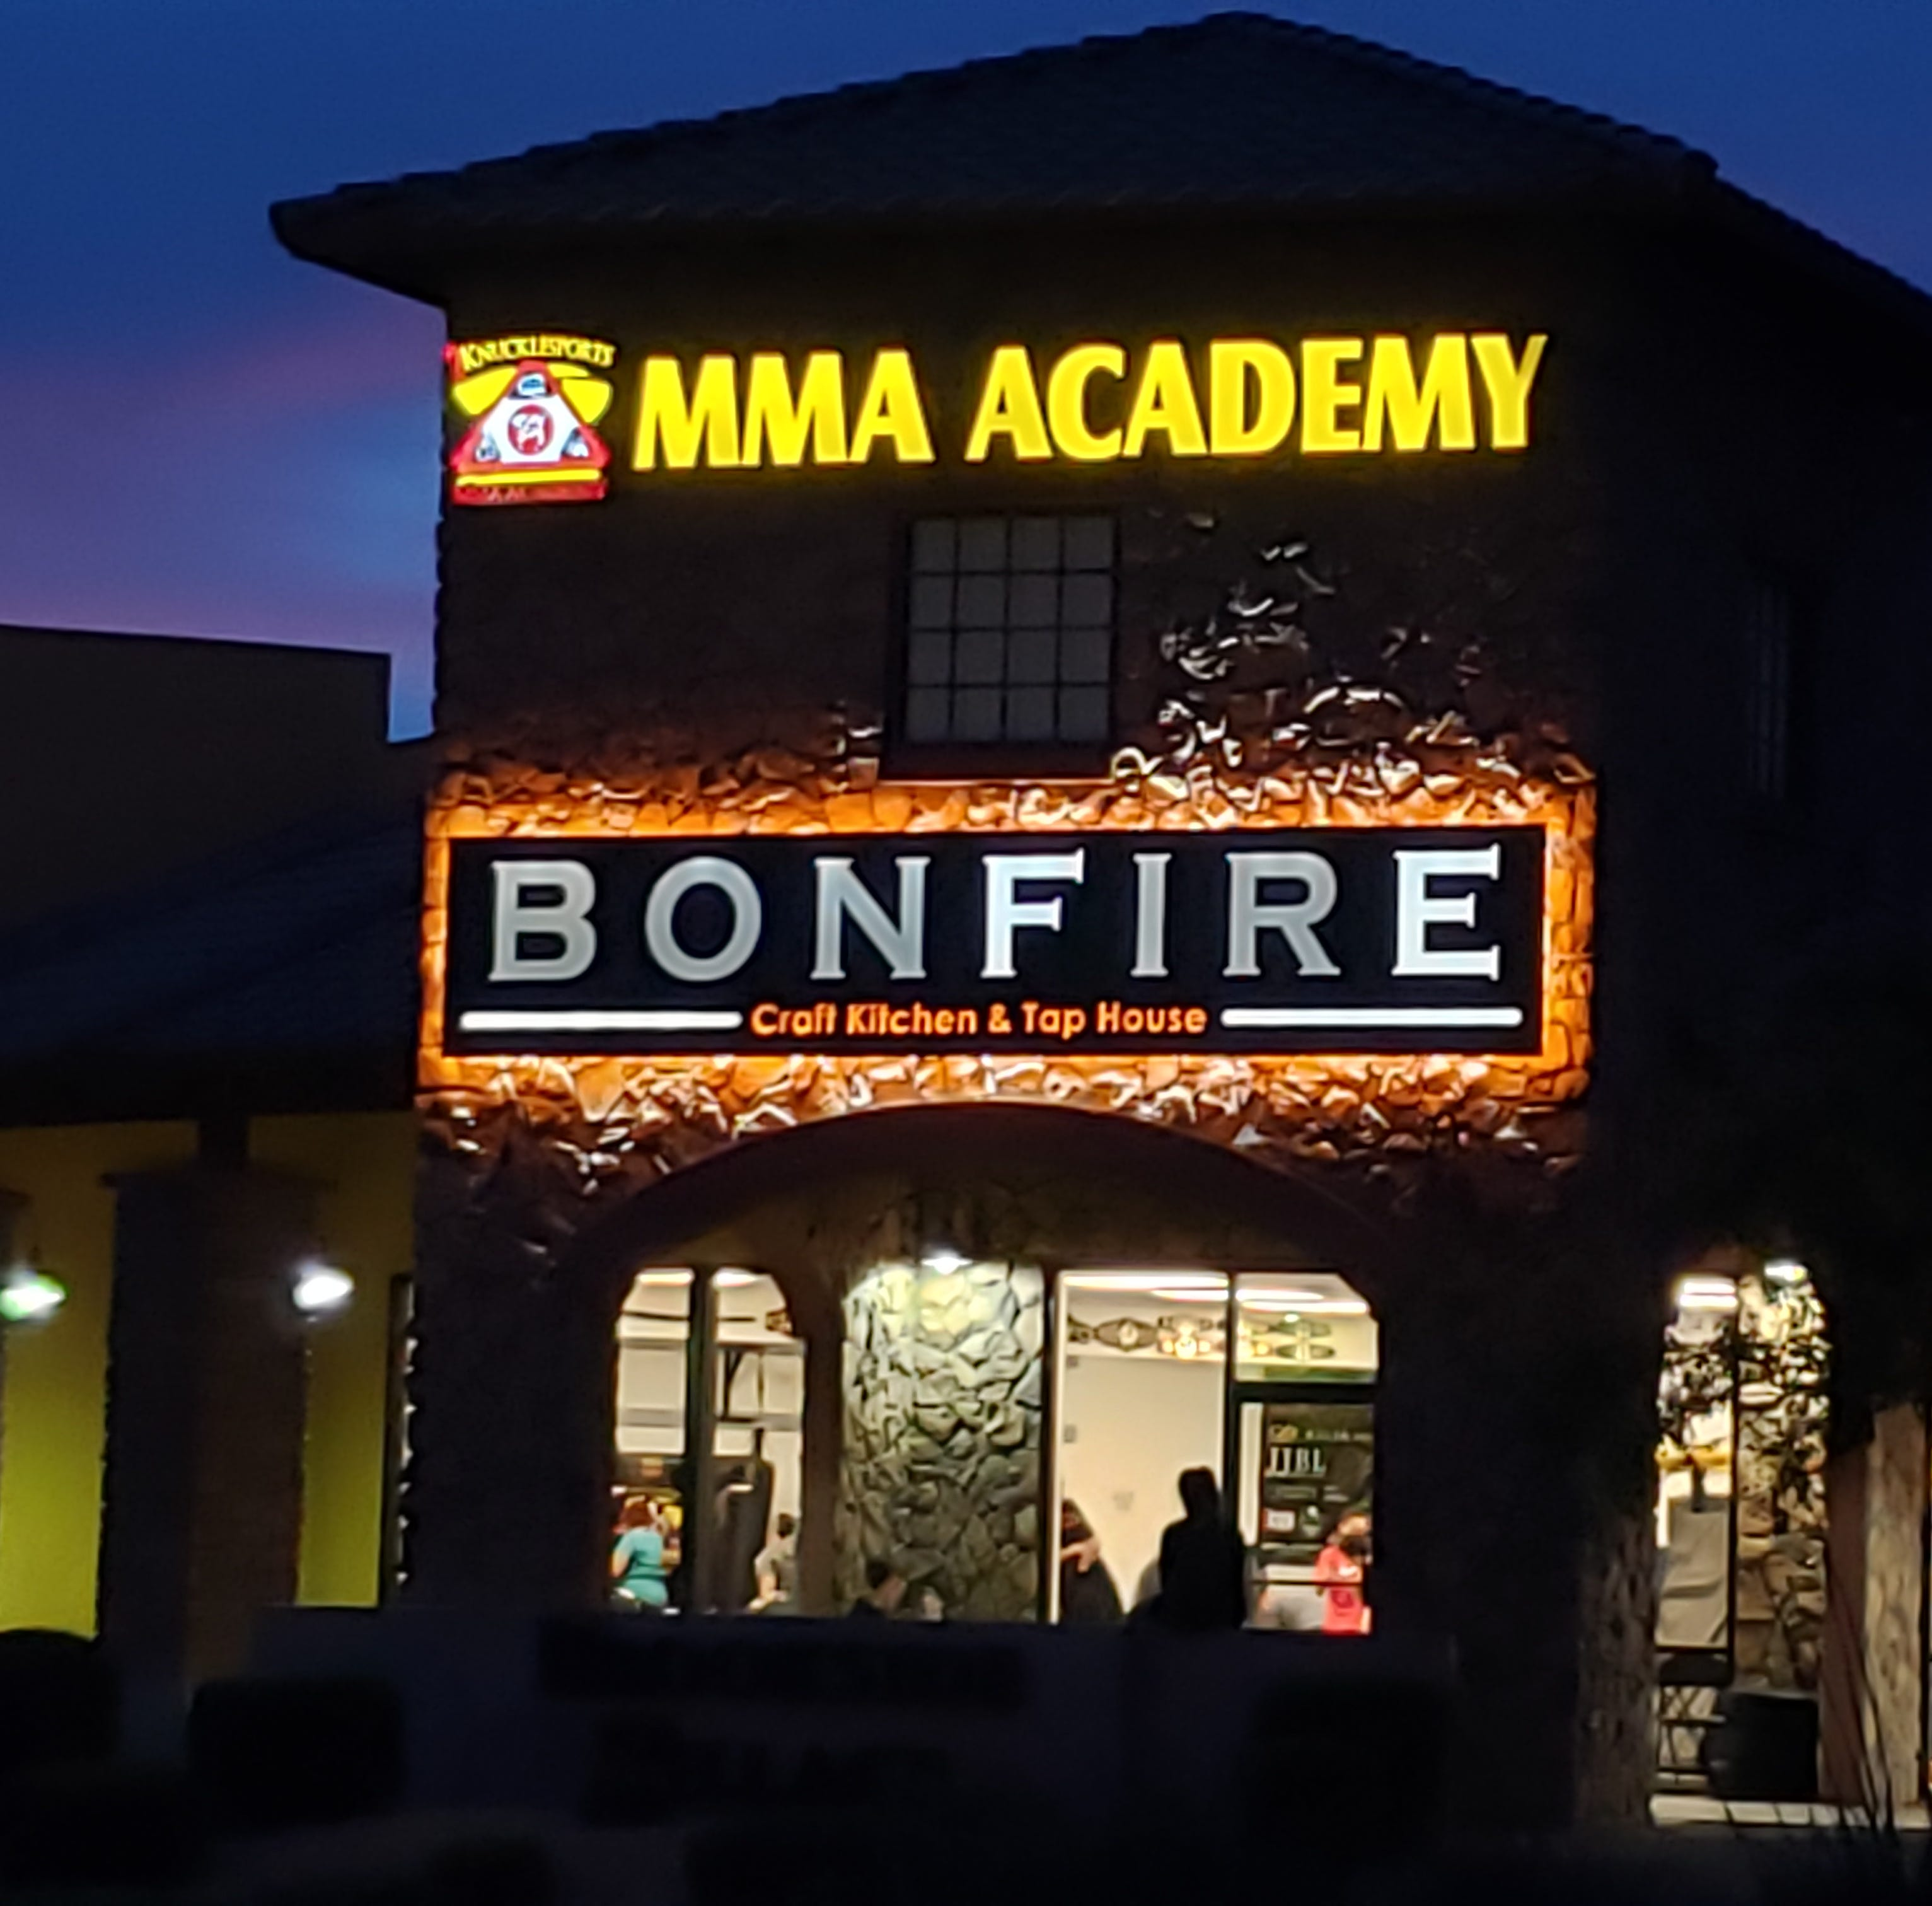 Free s'mores before dinner? Bonfire Craft Kitchen and Tap House answers call for more local fare in Surprise